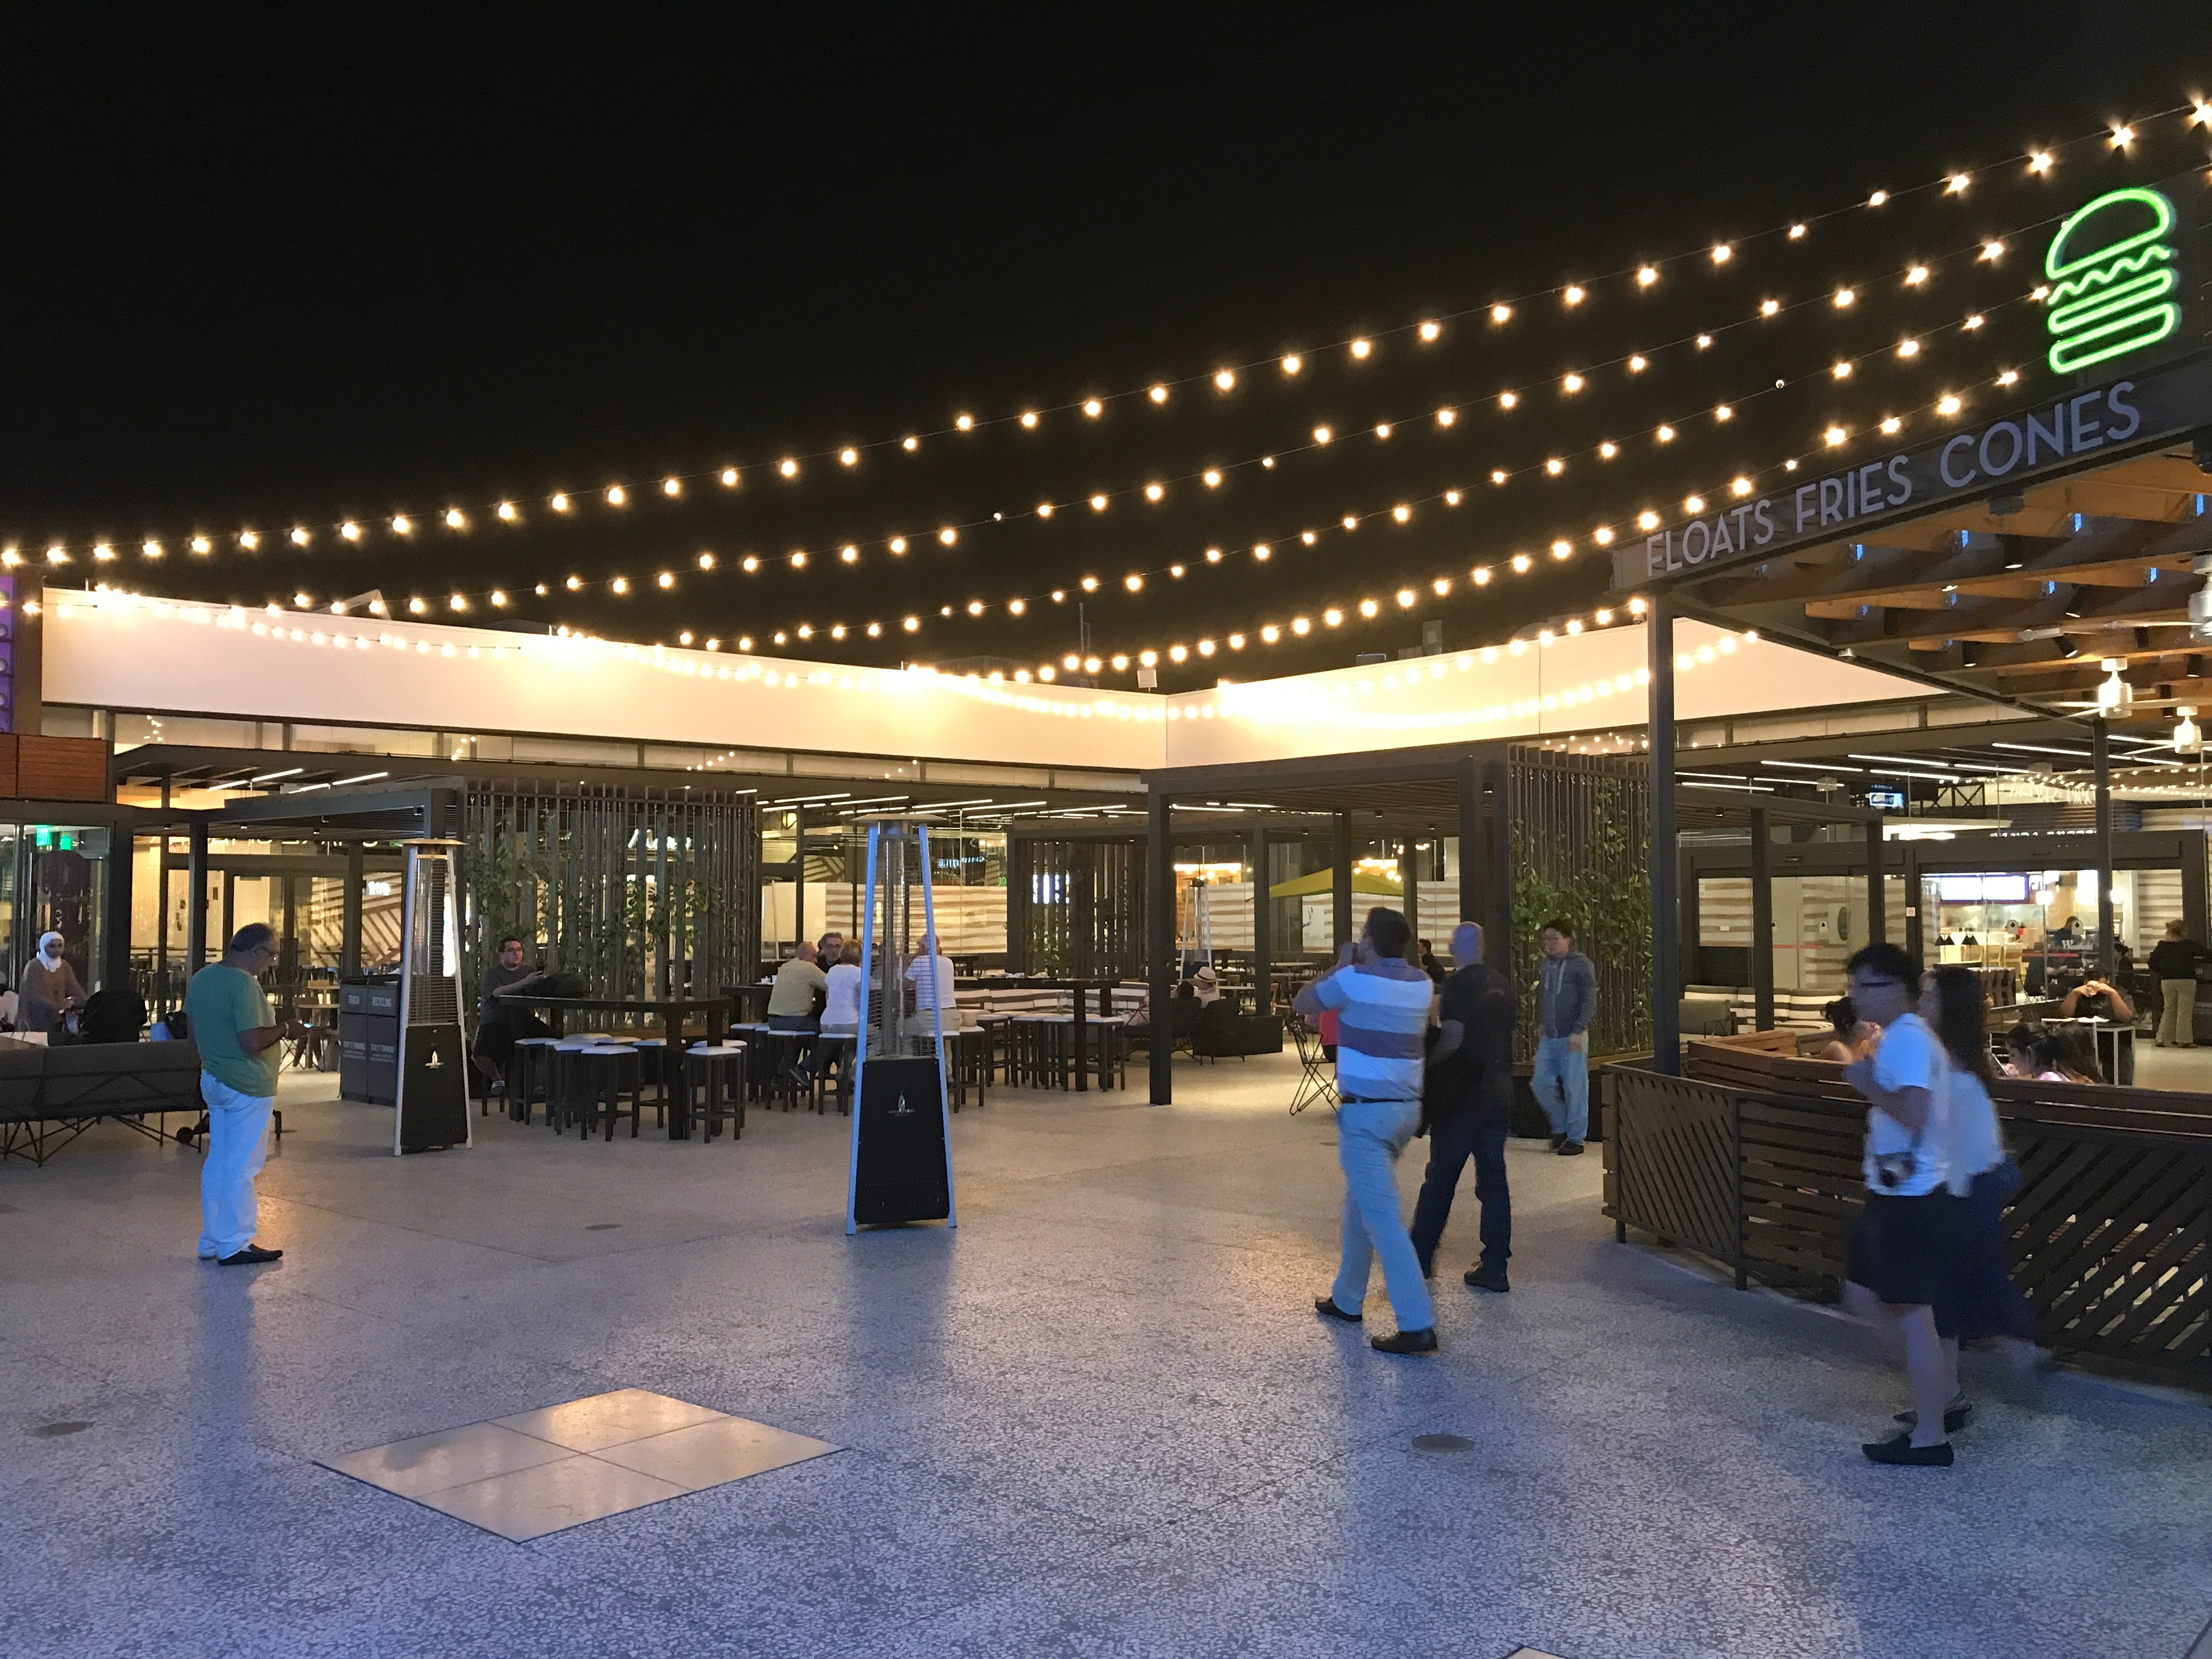 Customers mingle under the lights of the refurbished food court patio.